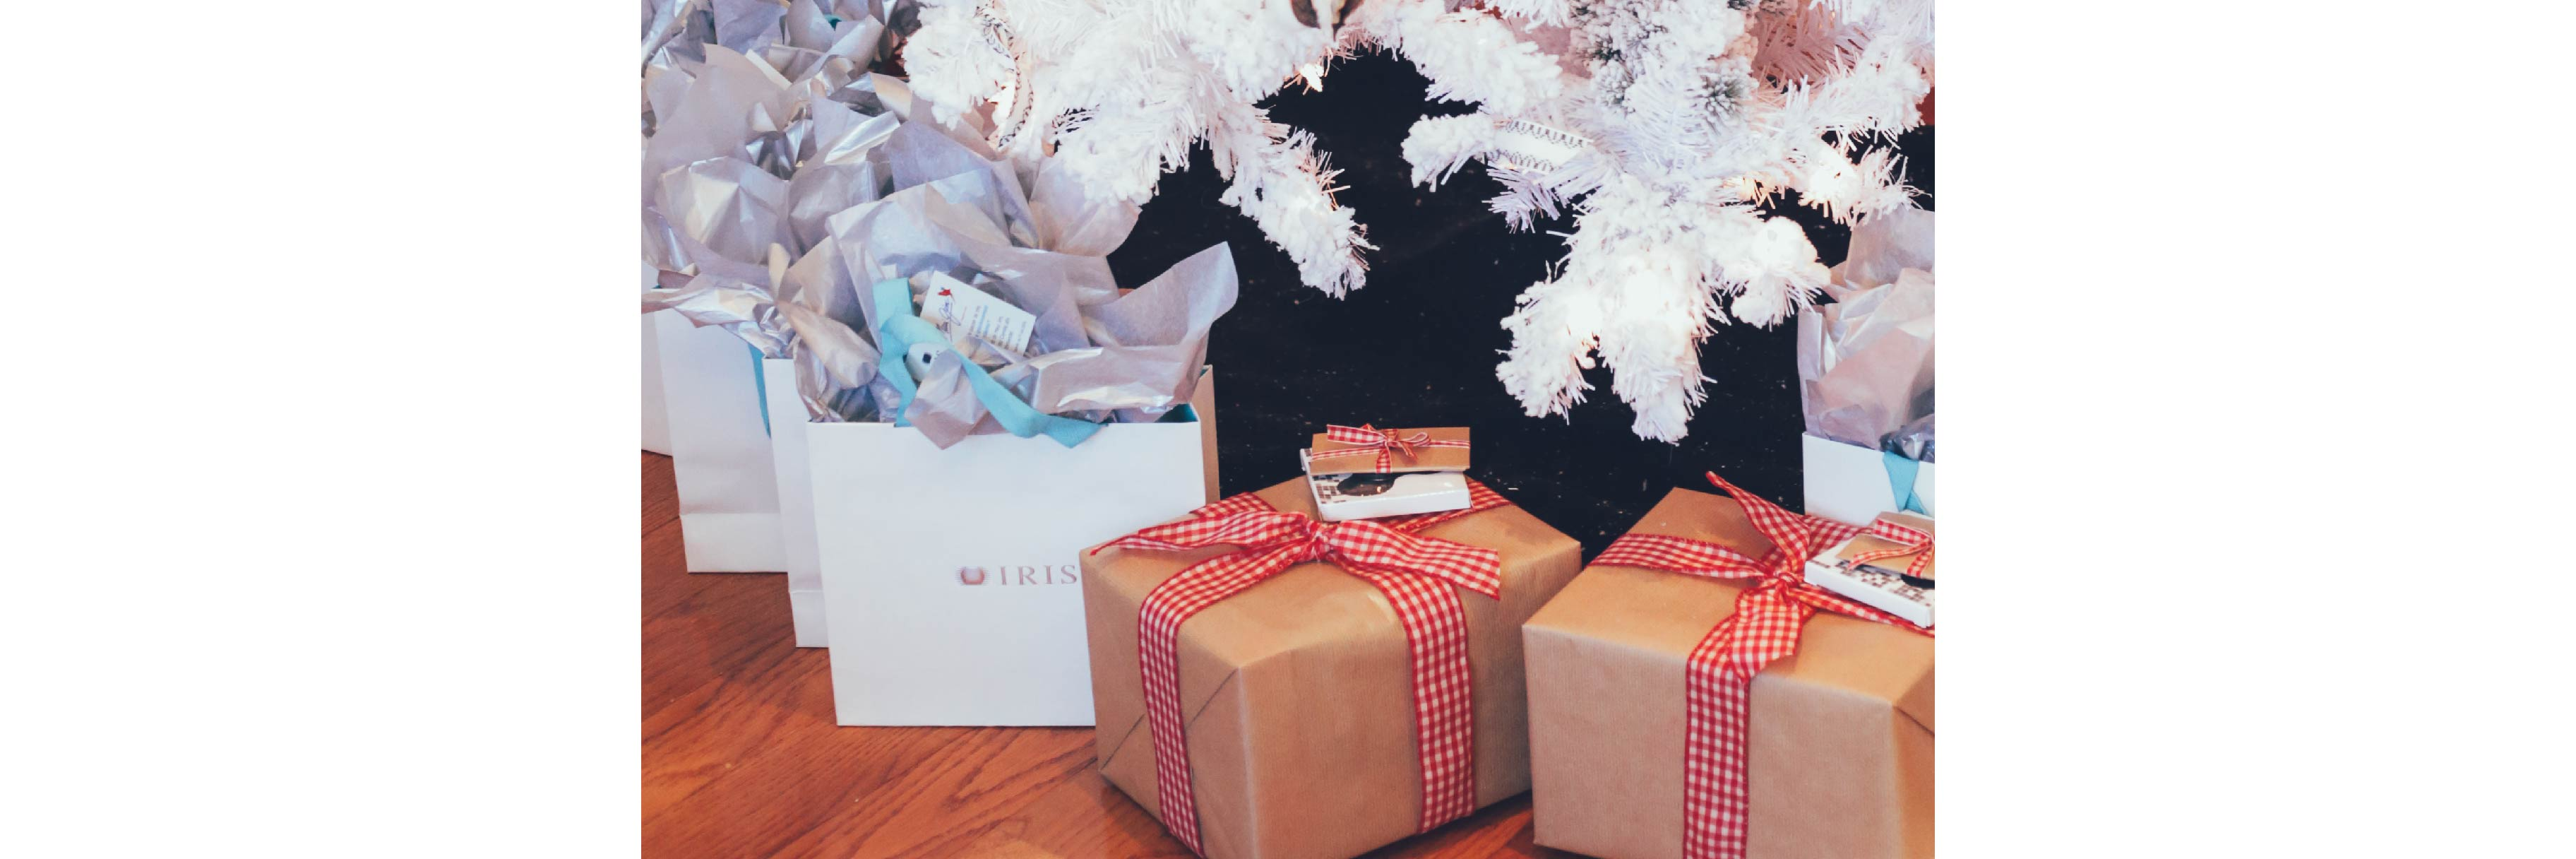 Gifts under the tree at the IRIS Ambassadors Brunch 2018